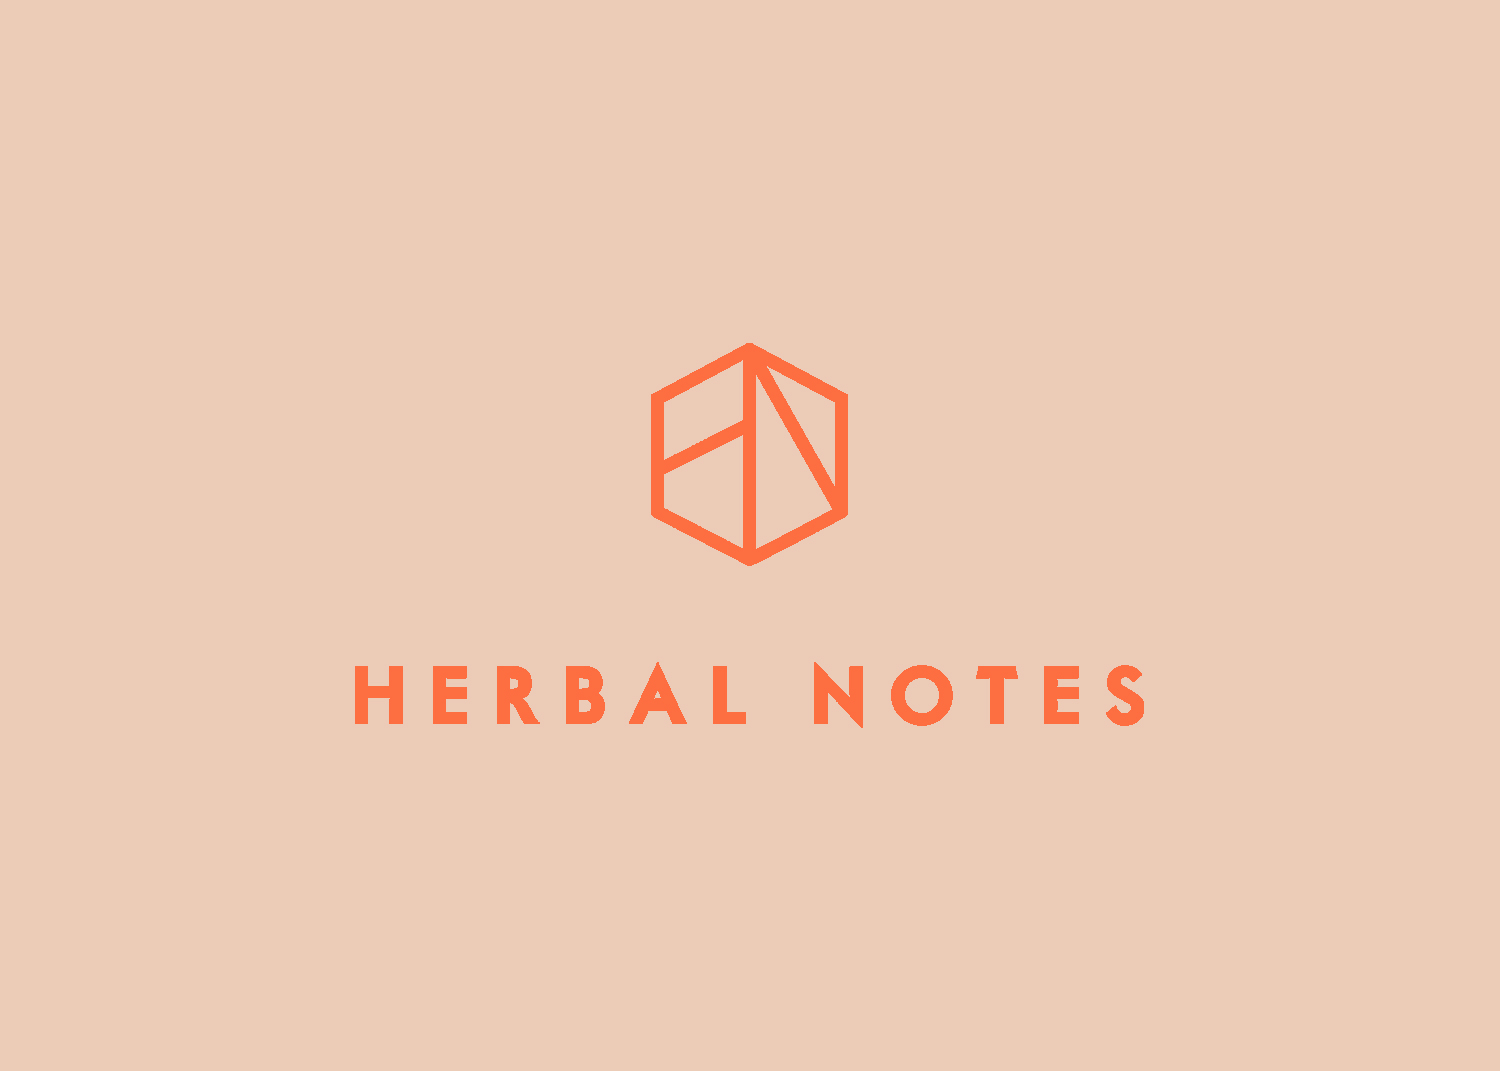 herbal notes hn monogram logo lydia ekeroth.jpg